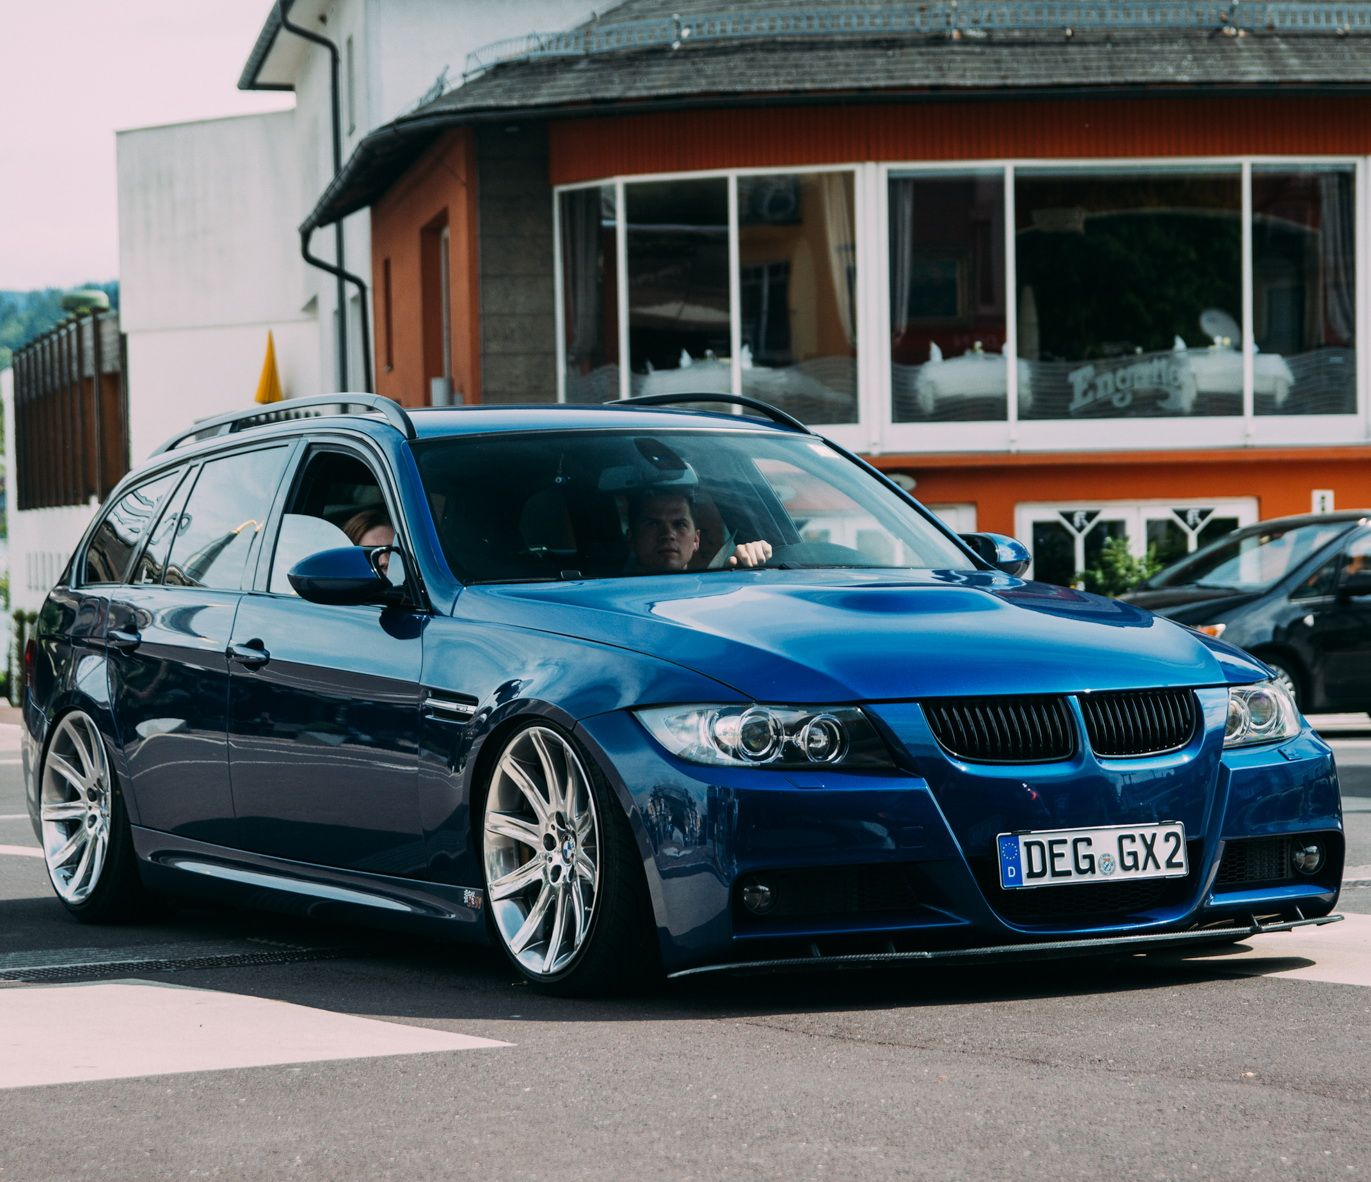 bmw e91 touring bmw pinterest bmw bmw touring and. Black Bedroom Furniture Sets. Home Design Ideas